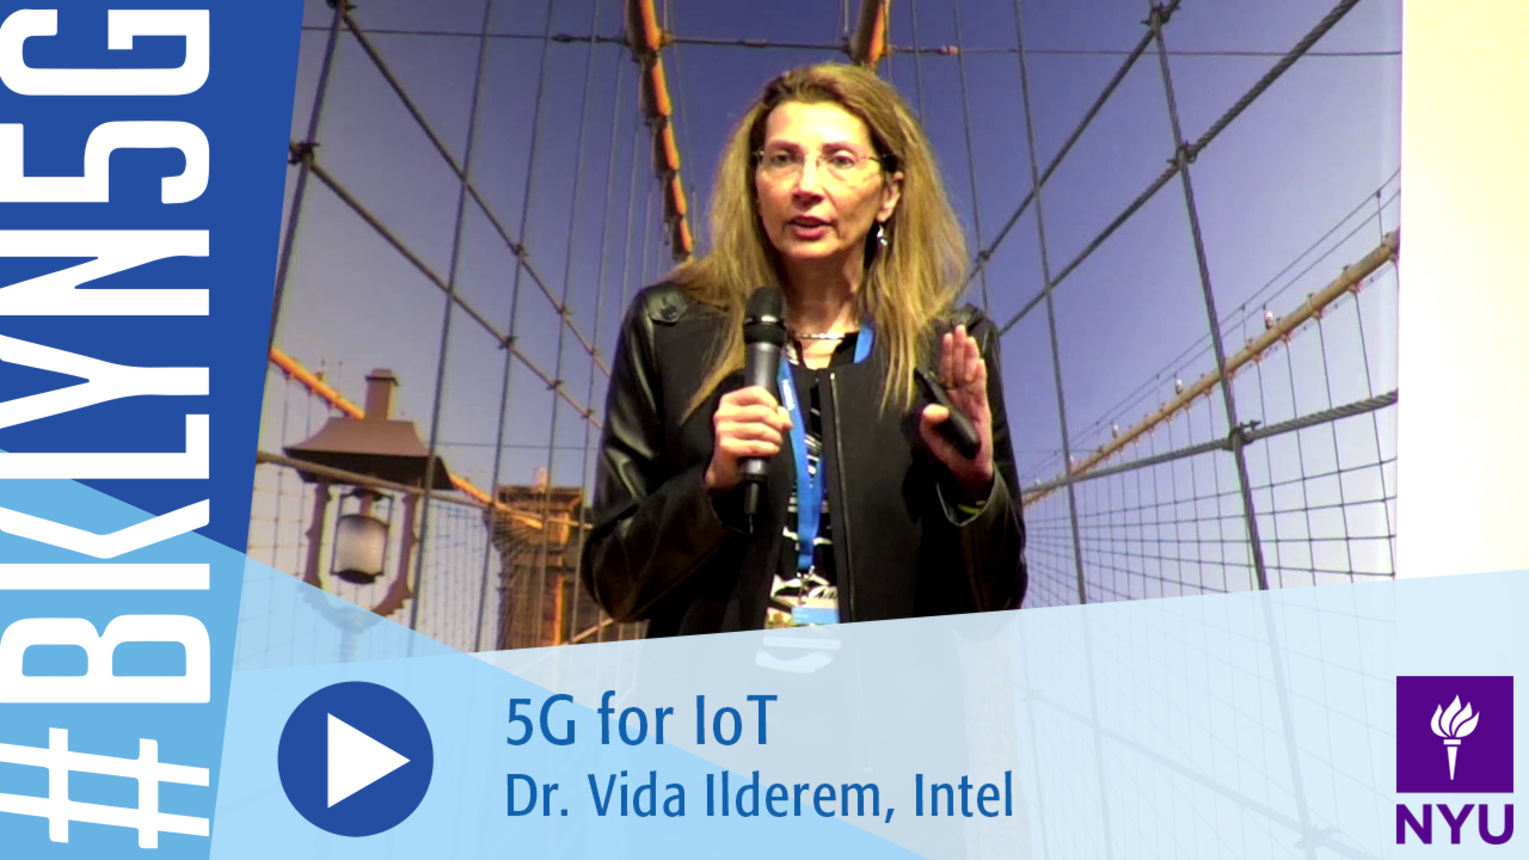 Brooklyn 5G 2016: Dr. Vida Ilderem on 5G for IoT